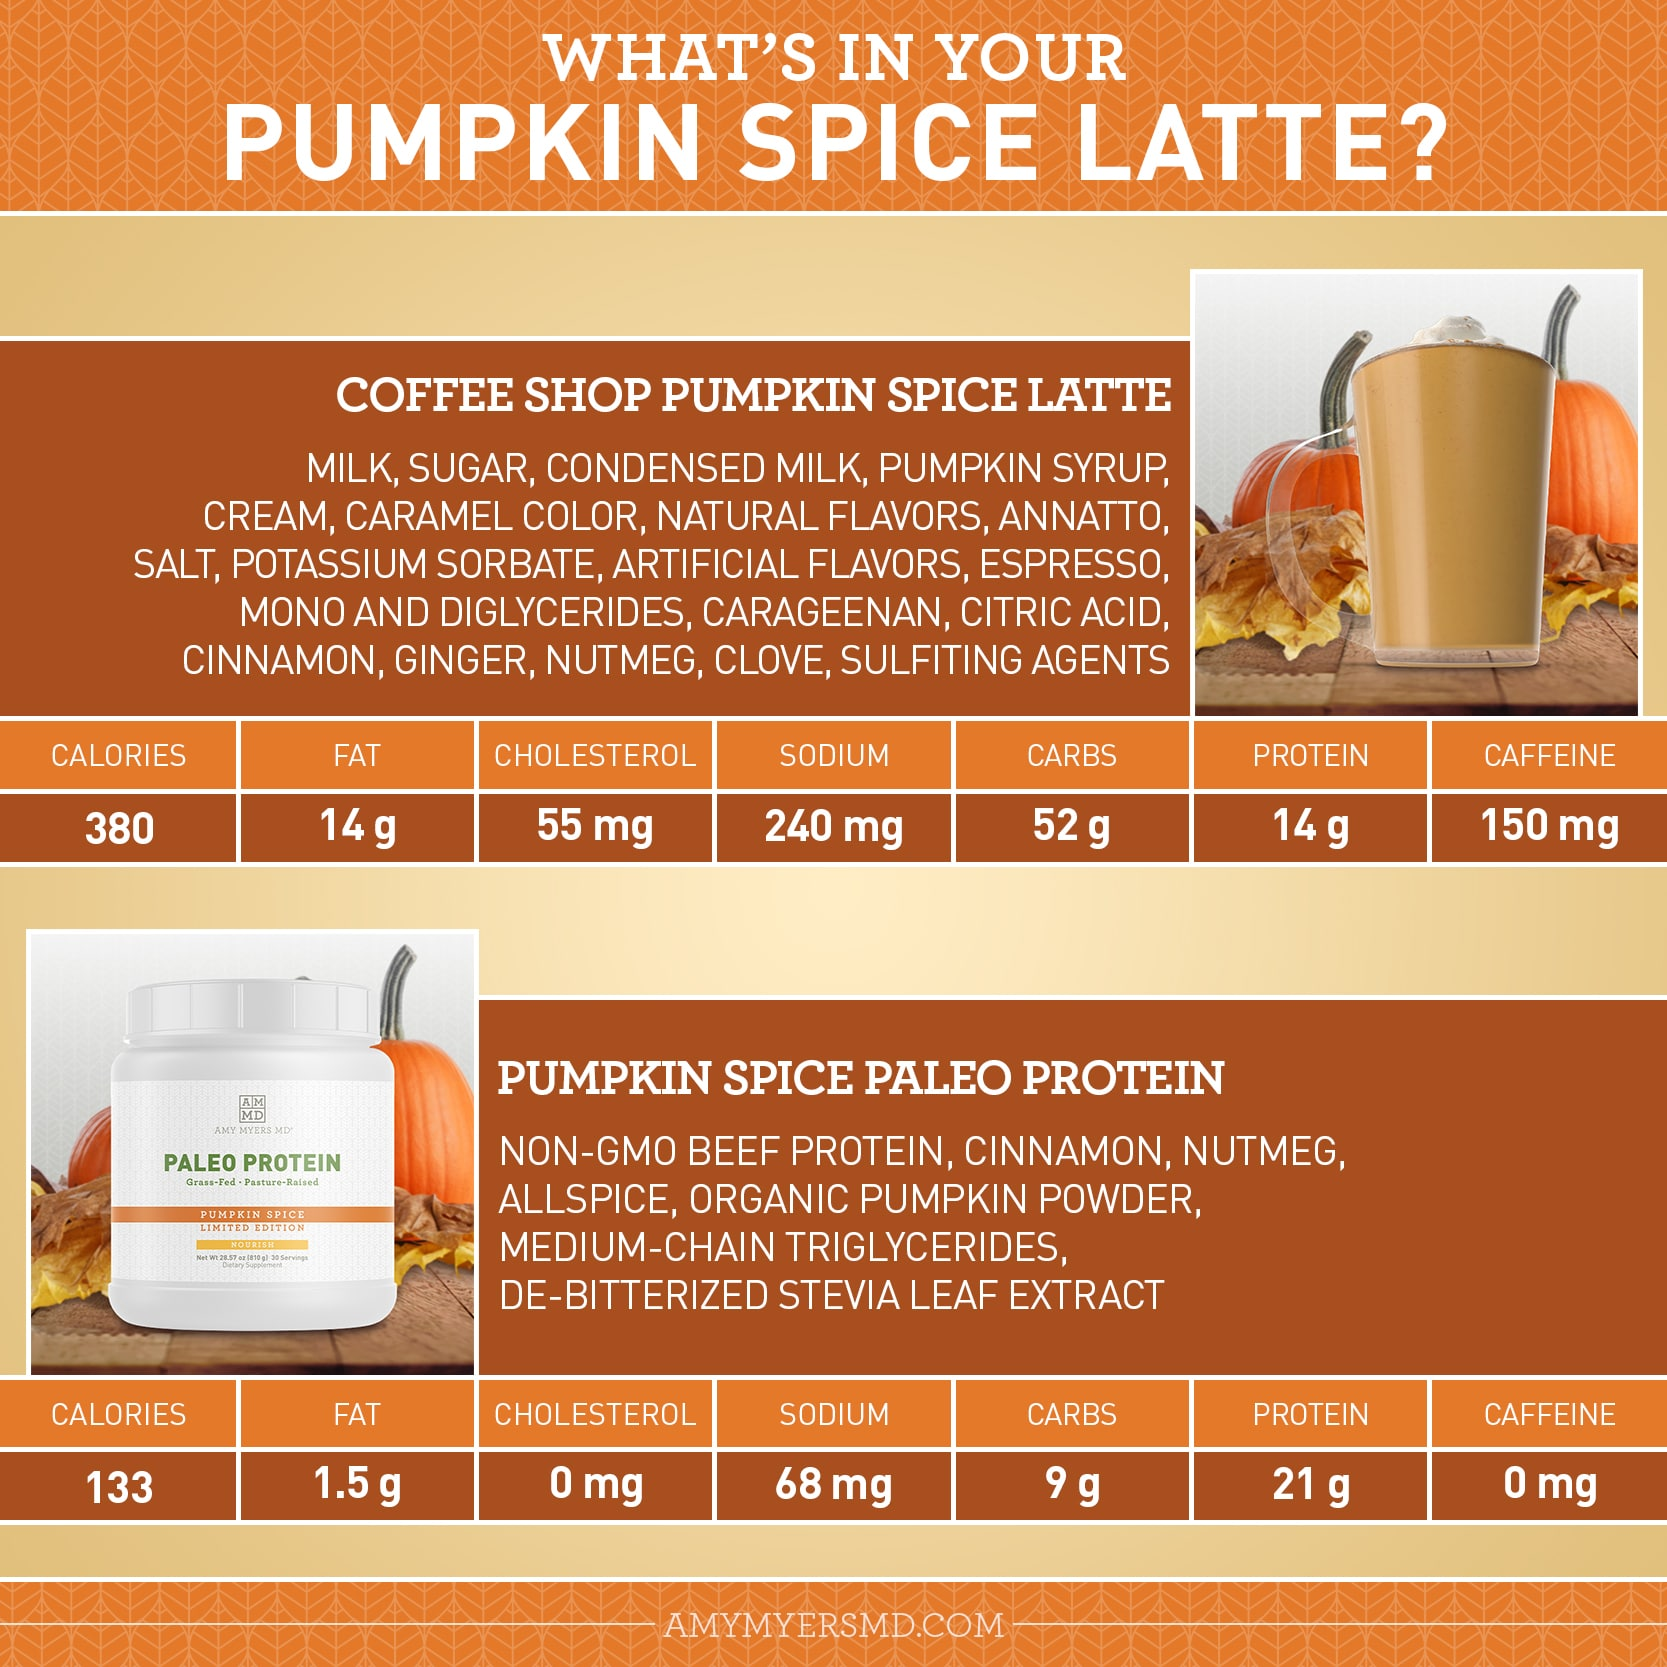 What's In your Pumpkin Spice Latte? - Infographic - Amy Myers MD